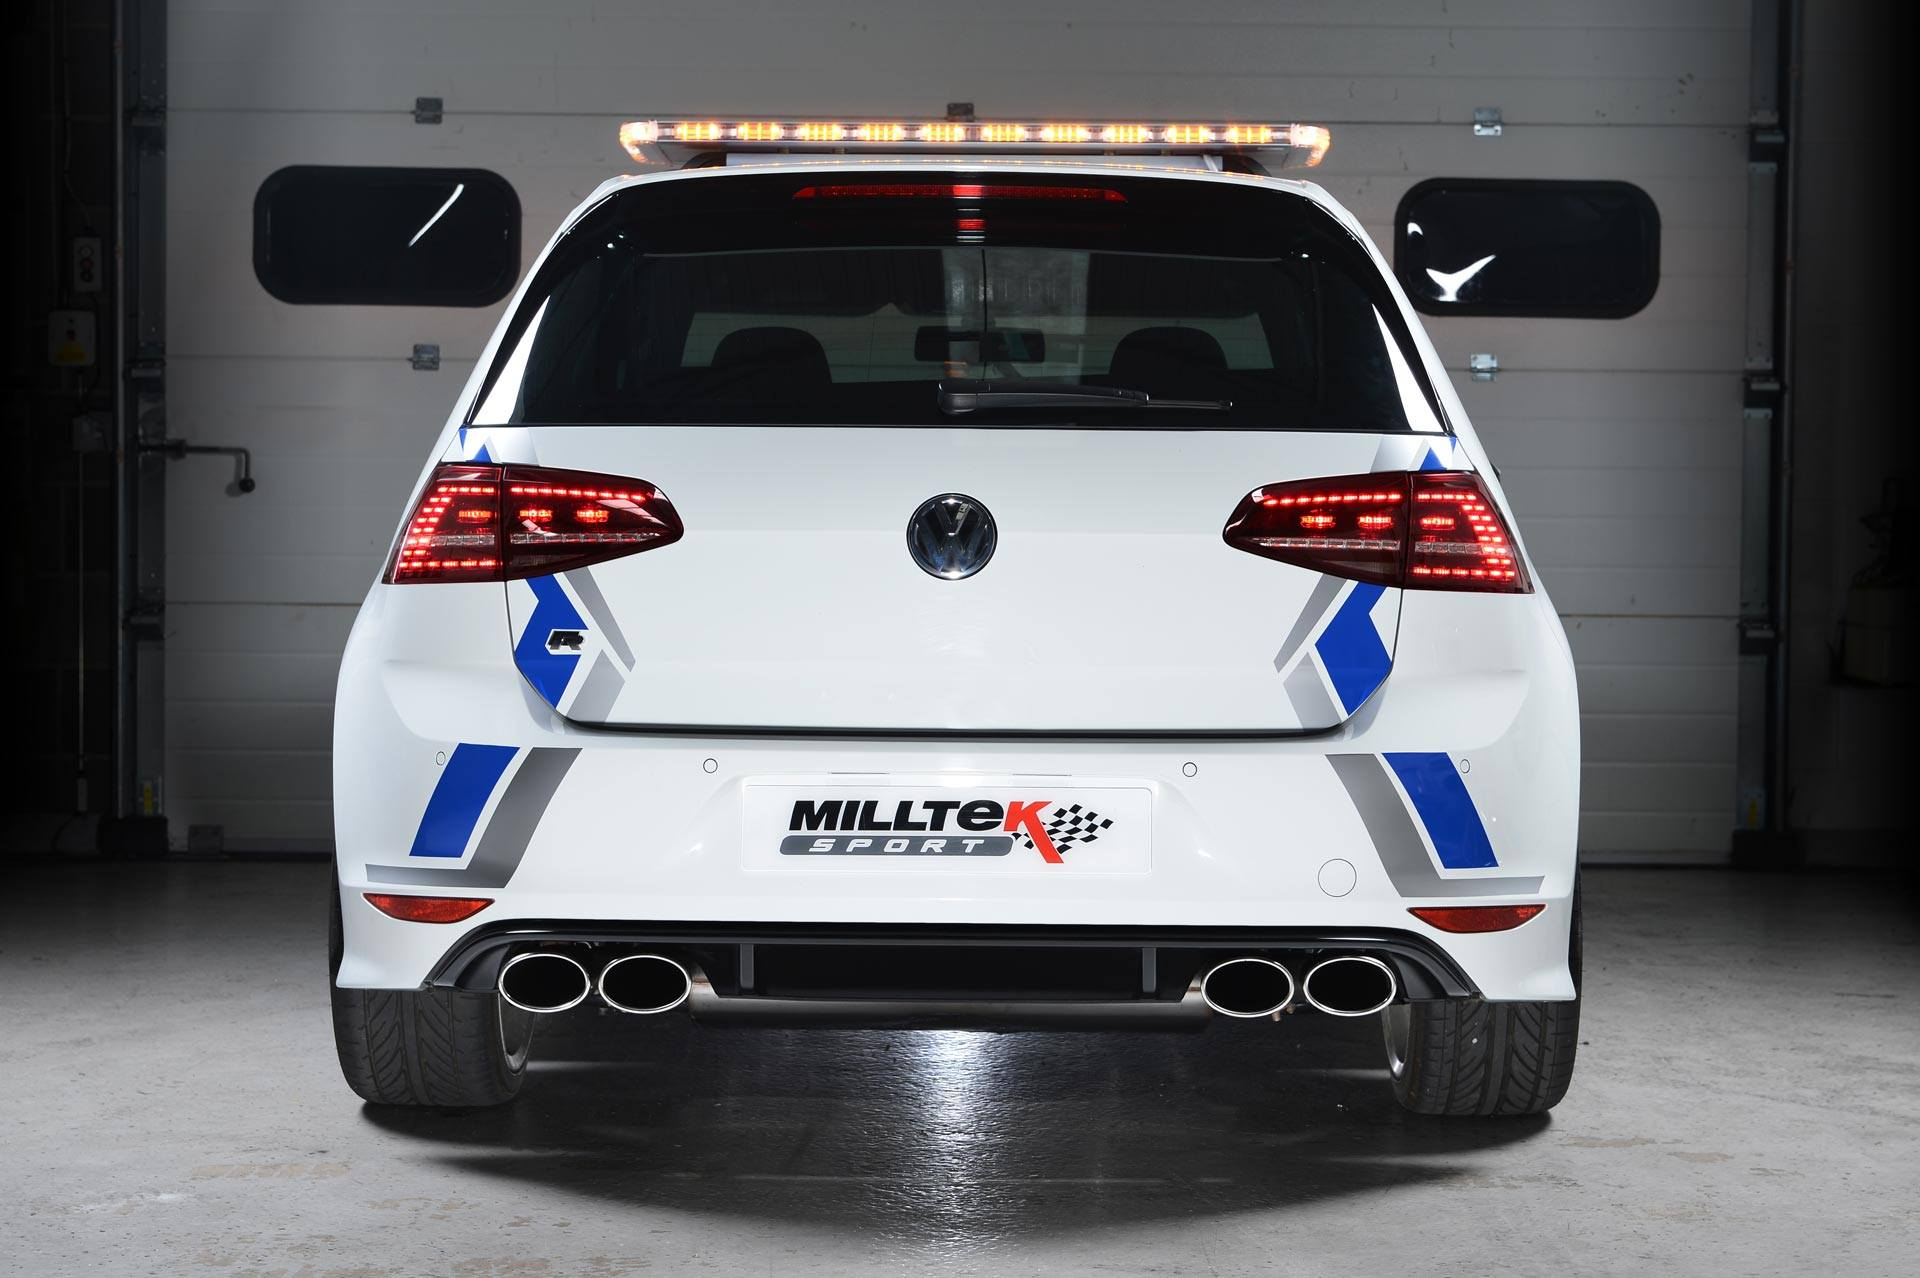 volkswagen golf 7 r gets sports exhaust system from milltek autoevolution. Black Bedroom Furniture Sets. Home Design Ideas